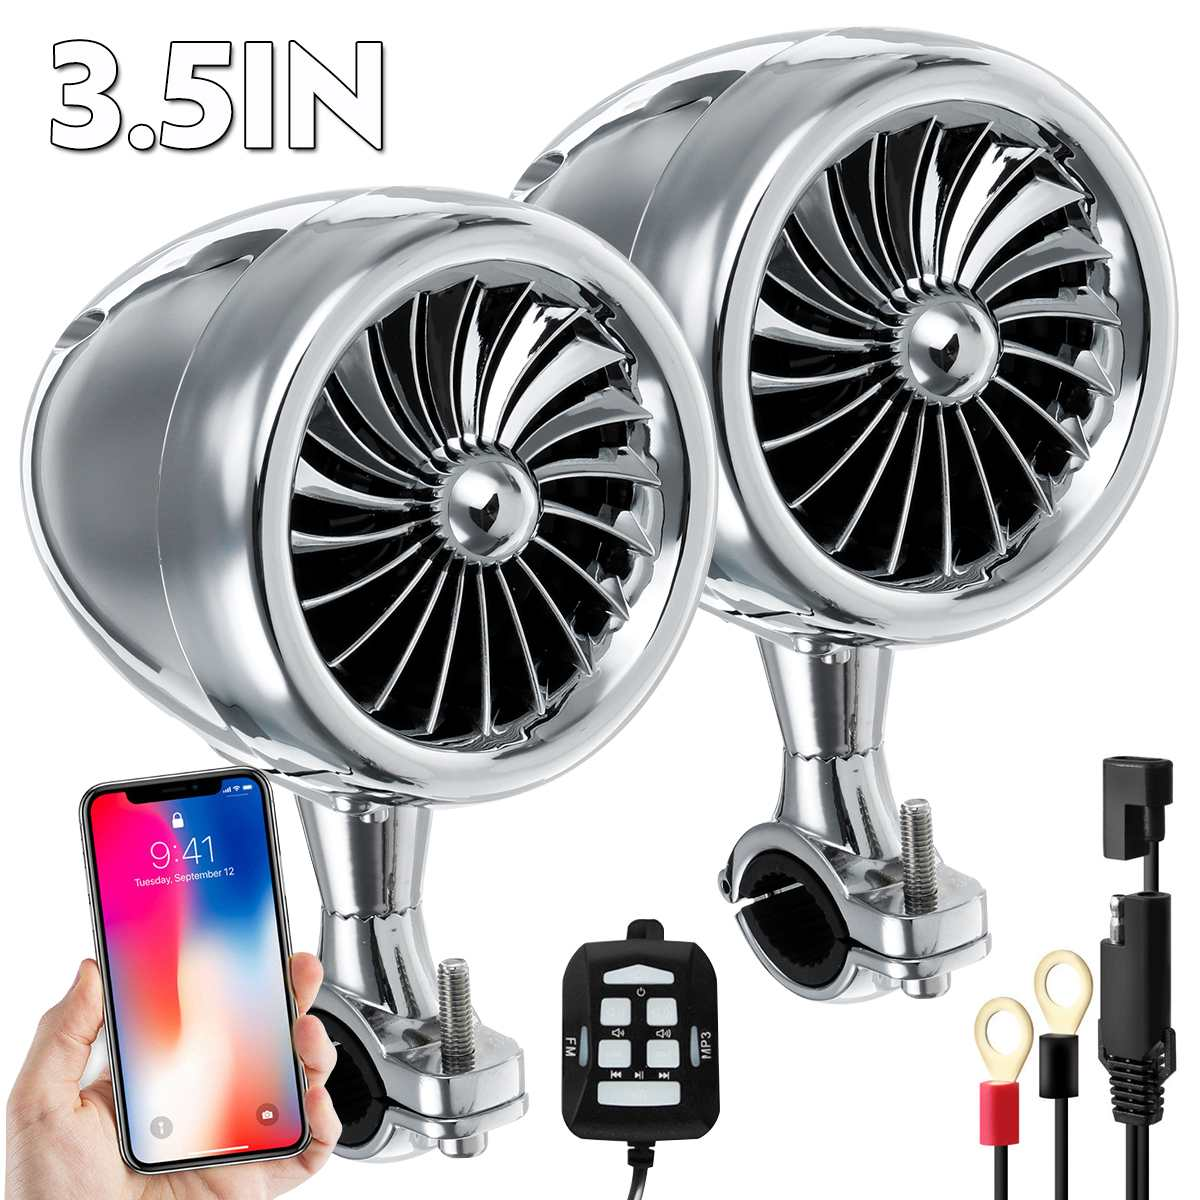 300W Waterproof Bluetooth Motorcycle Stereo Speakers MP3 Amplifier System Motorcycle Speakers Car Audio